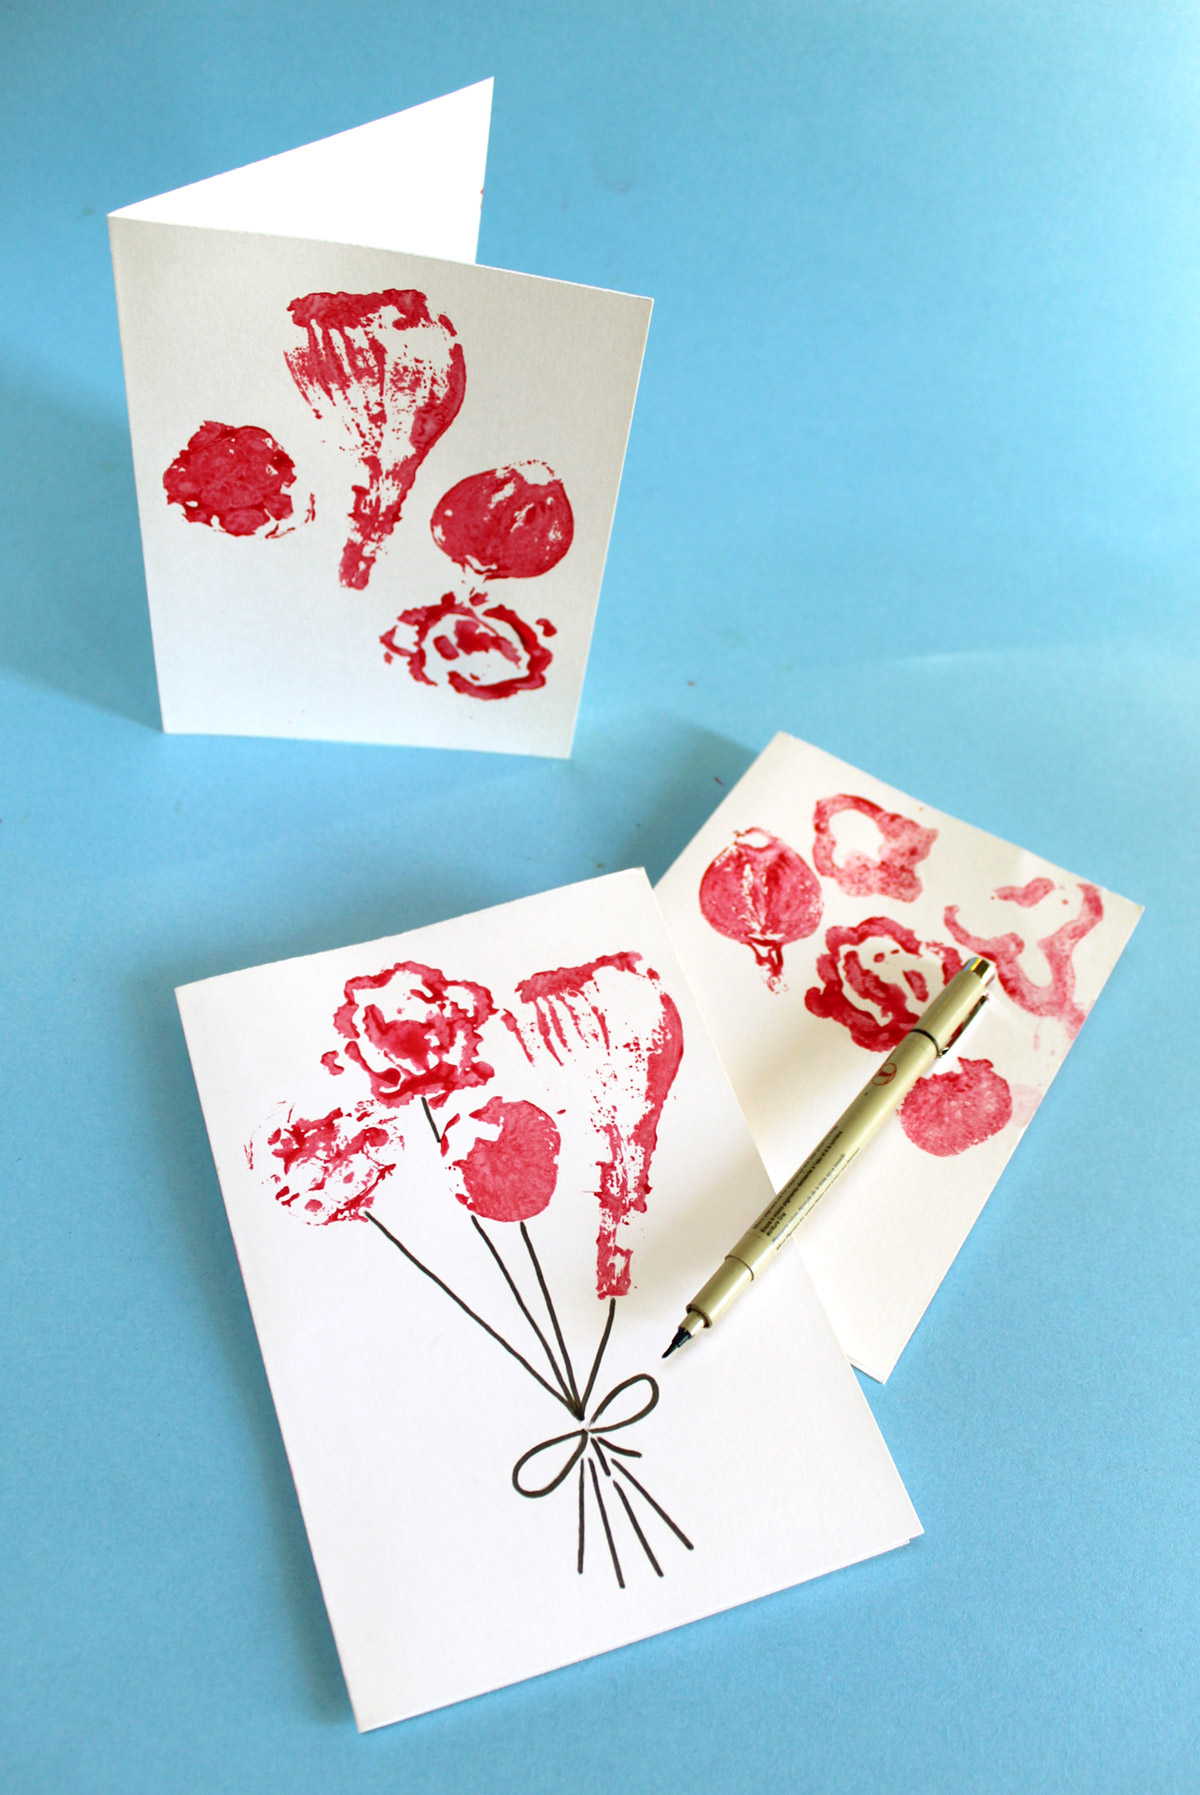 Draw Stems on Cards